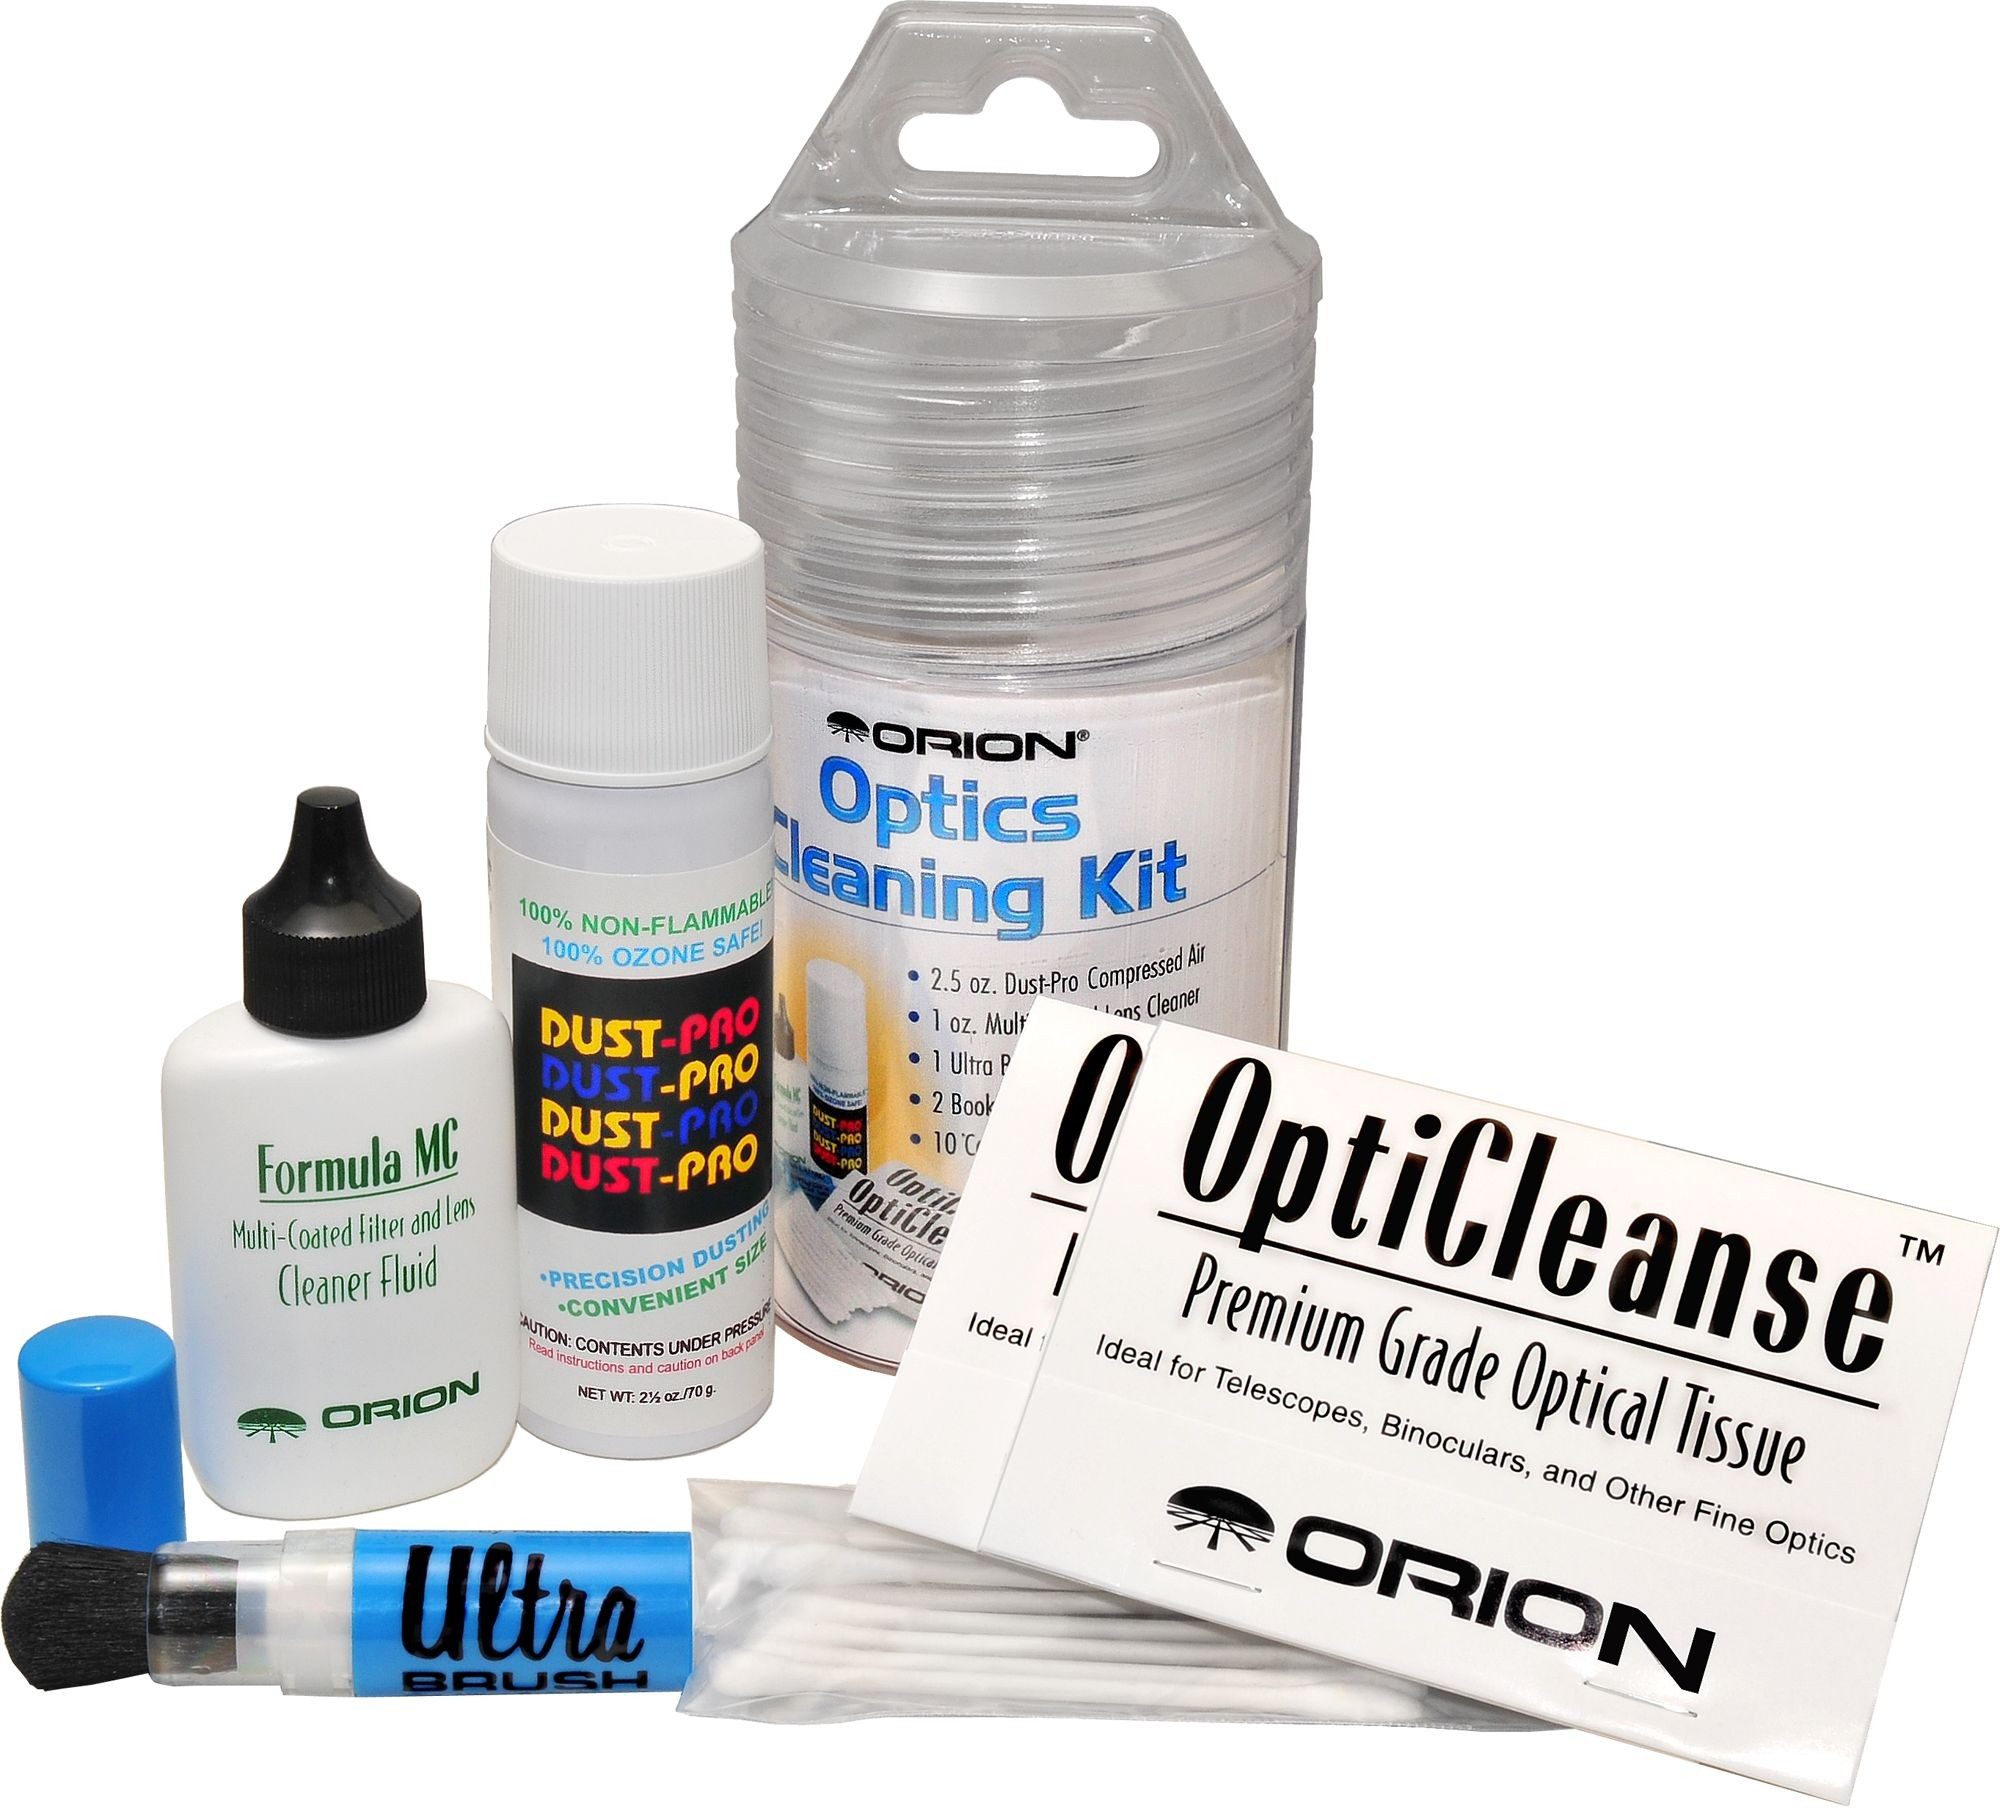 Orion Deluxe 6 Piece Optics Cleaning Kit